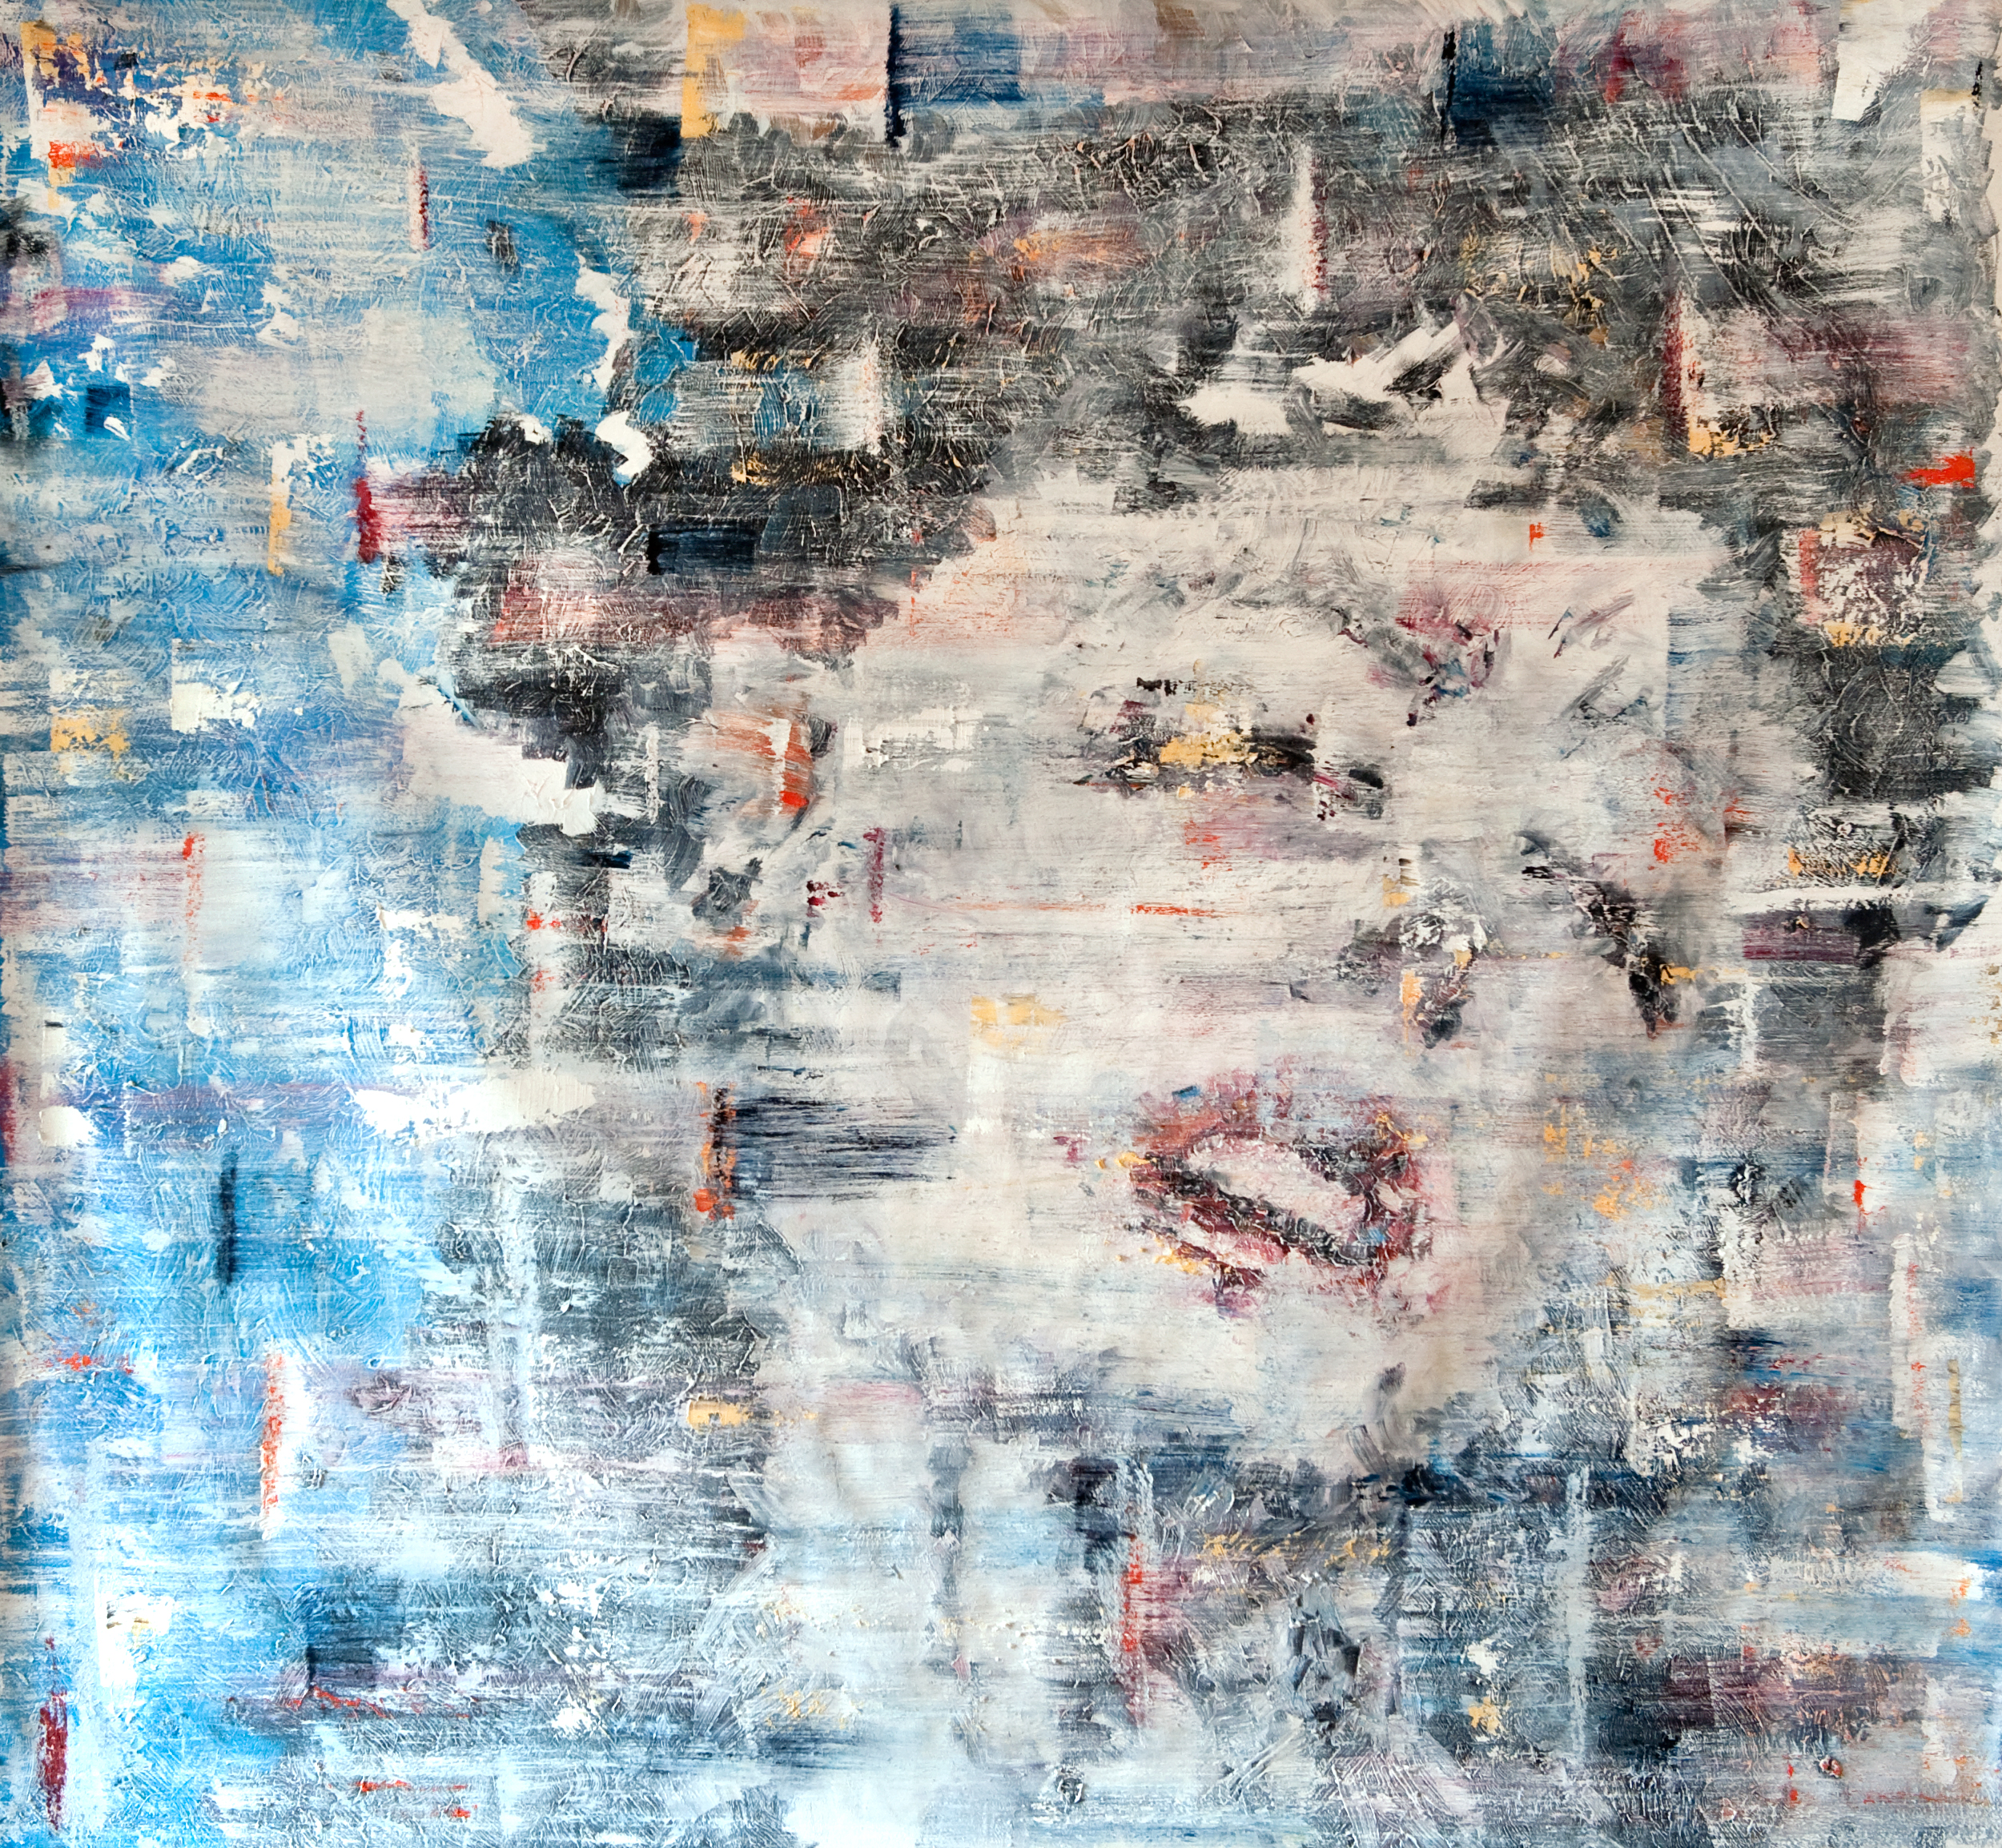 lust no. 1        oil on loose canvas 56x56 inch